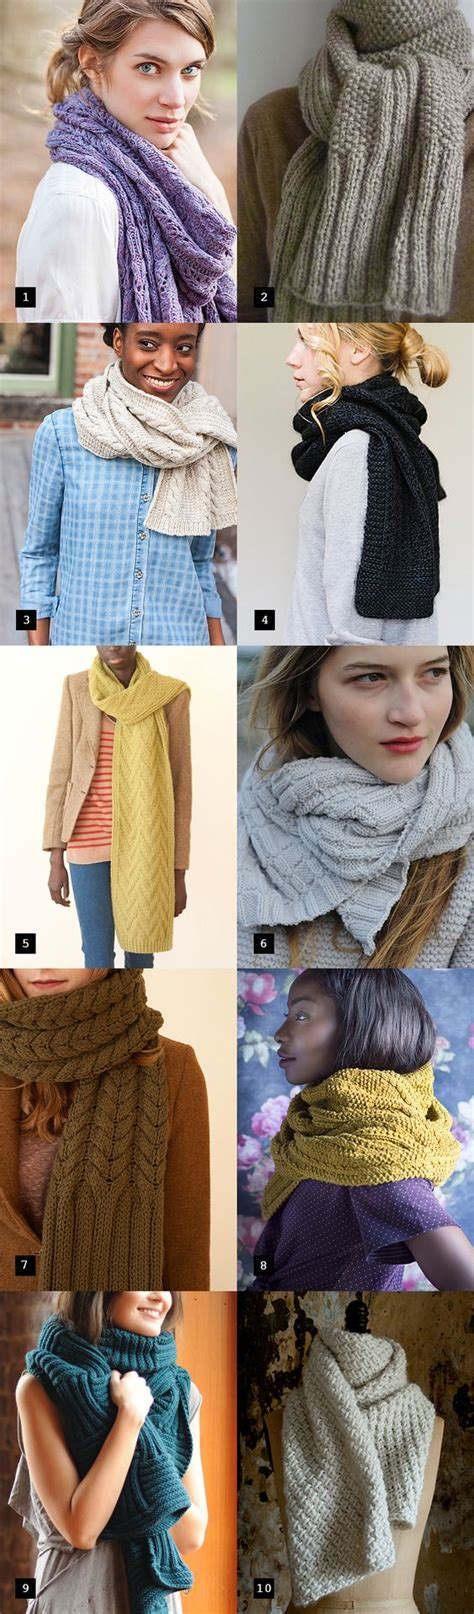 how to start knitting a scarf 10 knit scarves to start knitting now free knitted